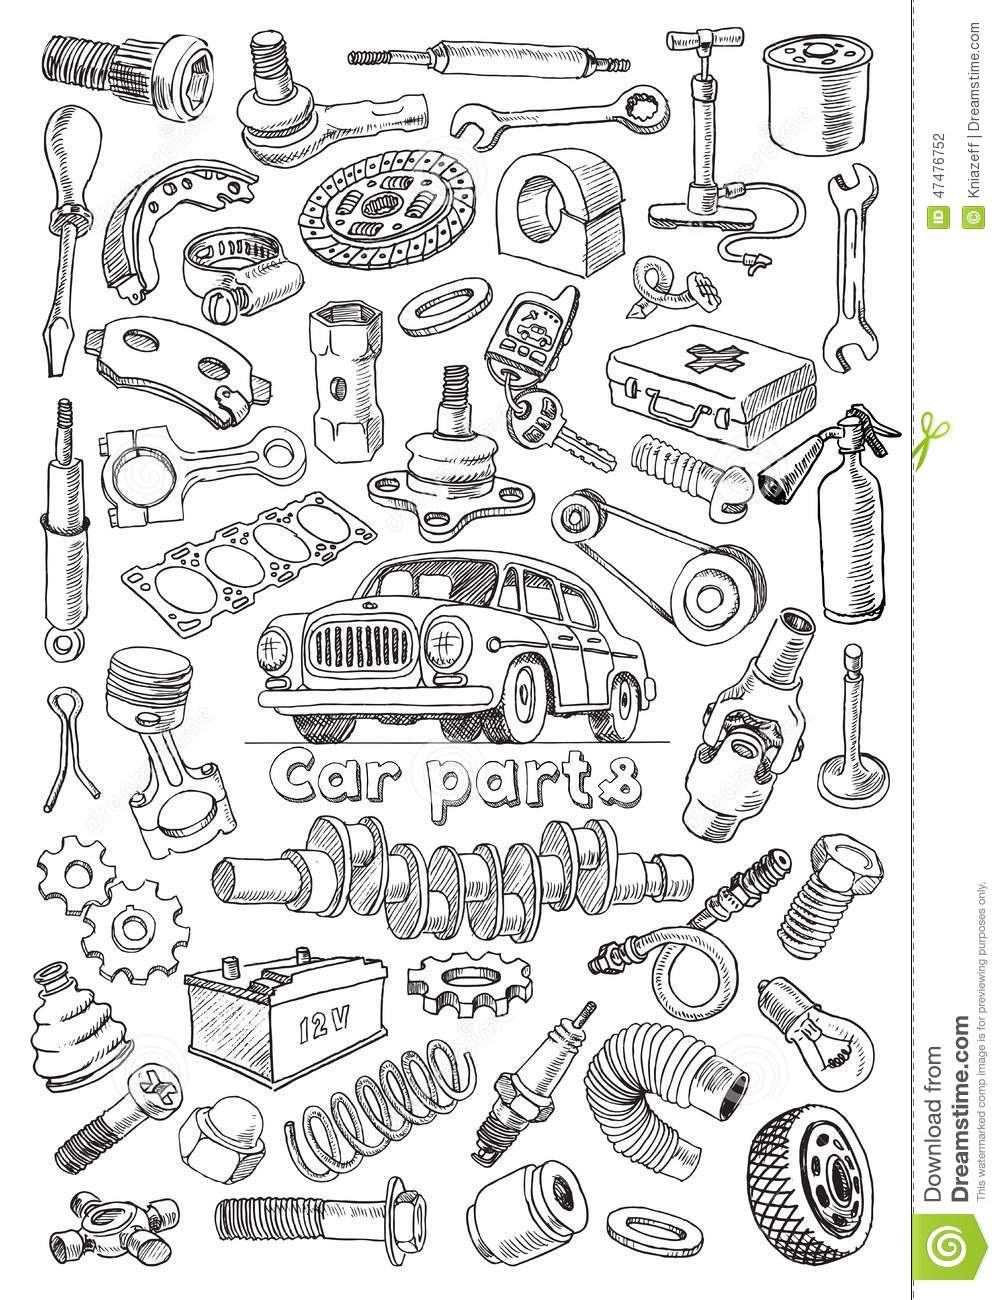 car parts in freehand drawing style stock vector